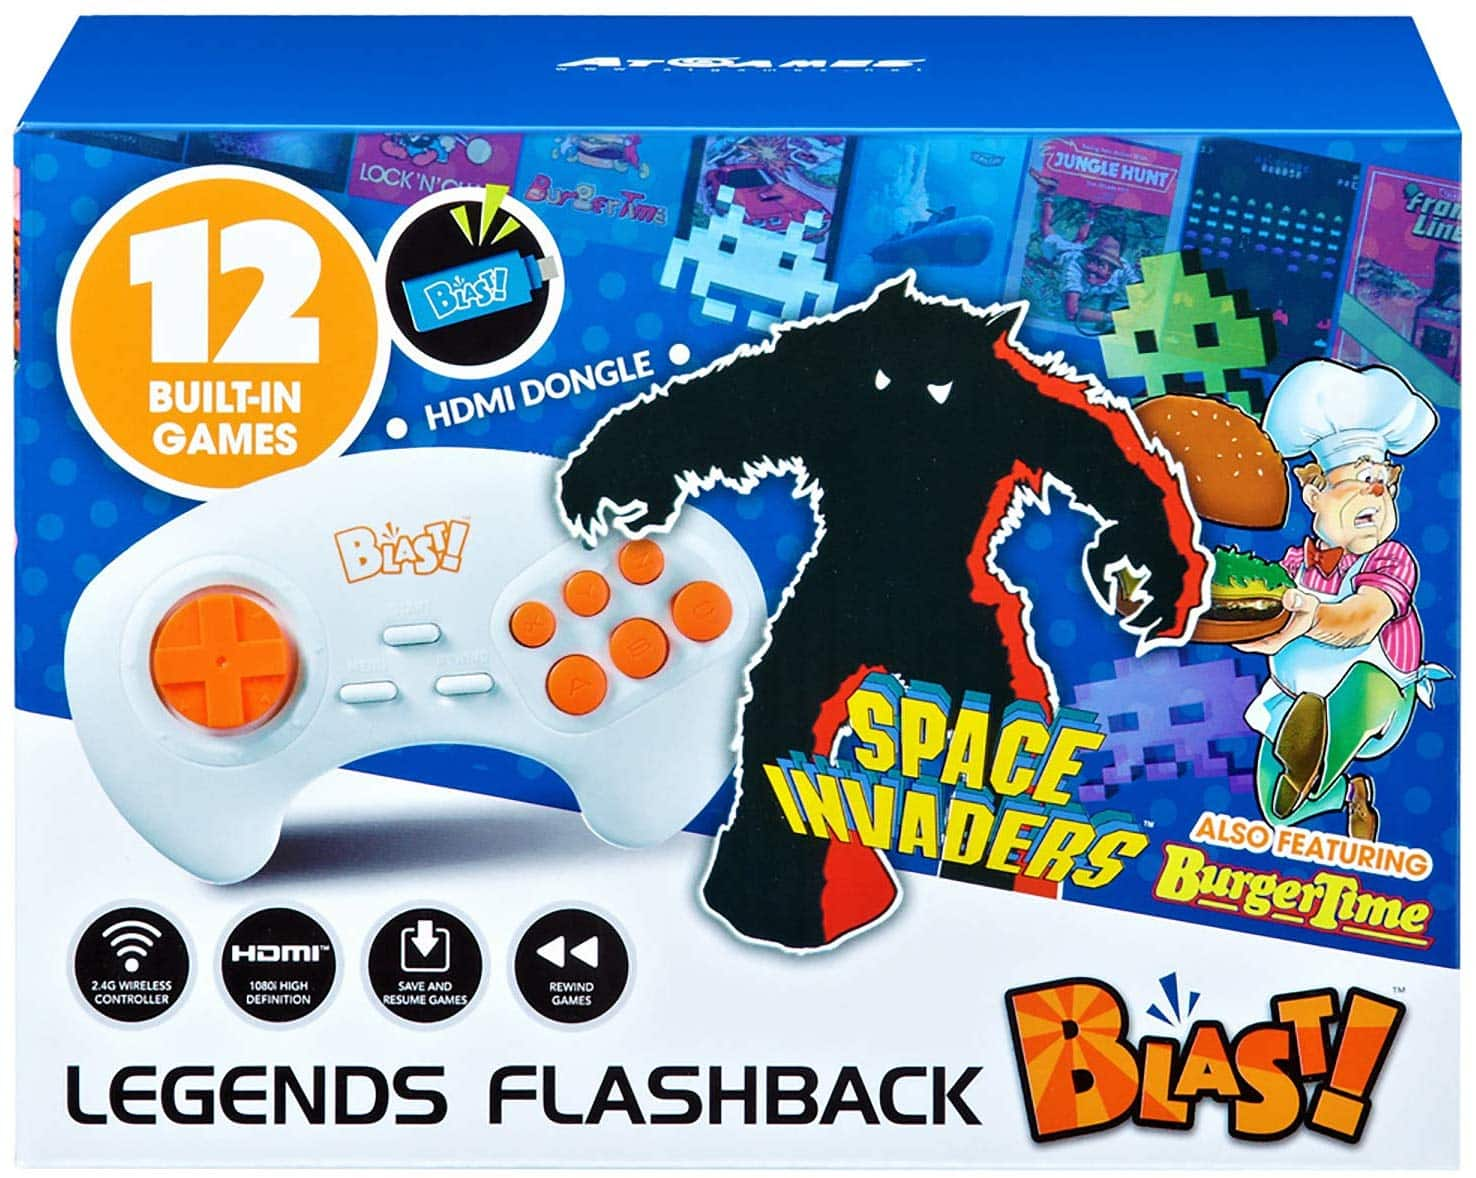 Legends Flashback Blast! Space Invaders Retro Gaming for $5.99 + Free Store Pickup!